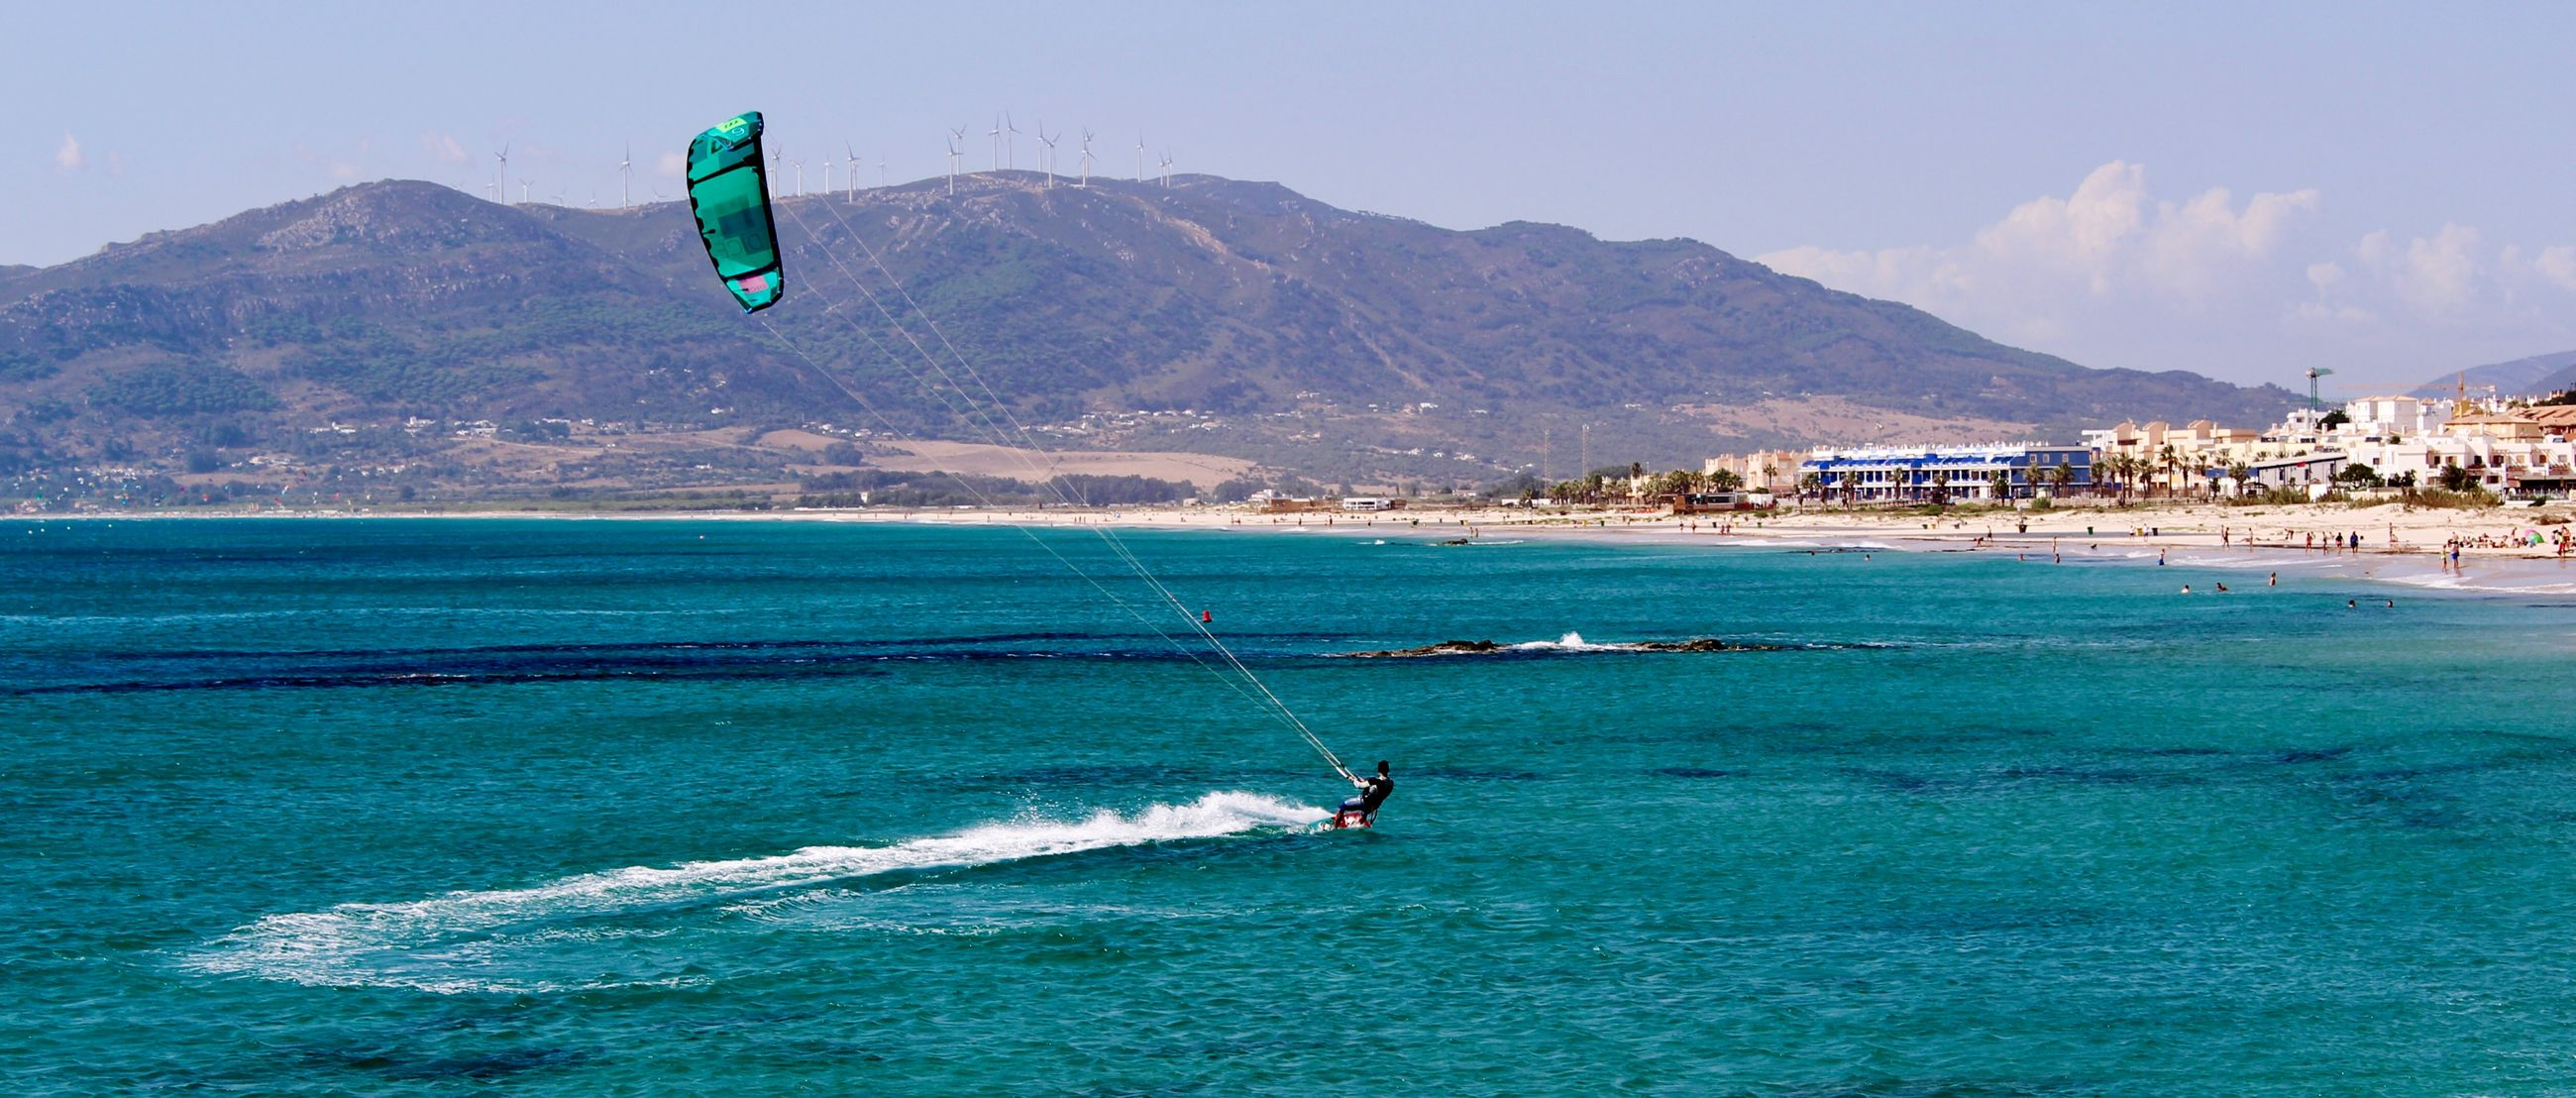 water, sport, sea, mountain, extreme sports, aquatic sport, leisure activity, beauty in nature, waterfront, real people, lifestyles, adventure, motion, one person, surfing, nature, sky, day, scenics - nature, kiteboarding, skill, outdoors, turquoise colored